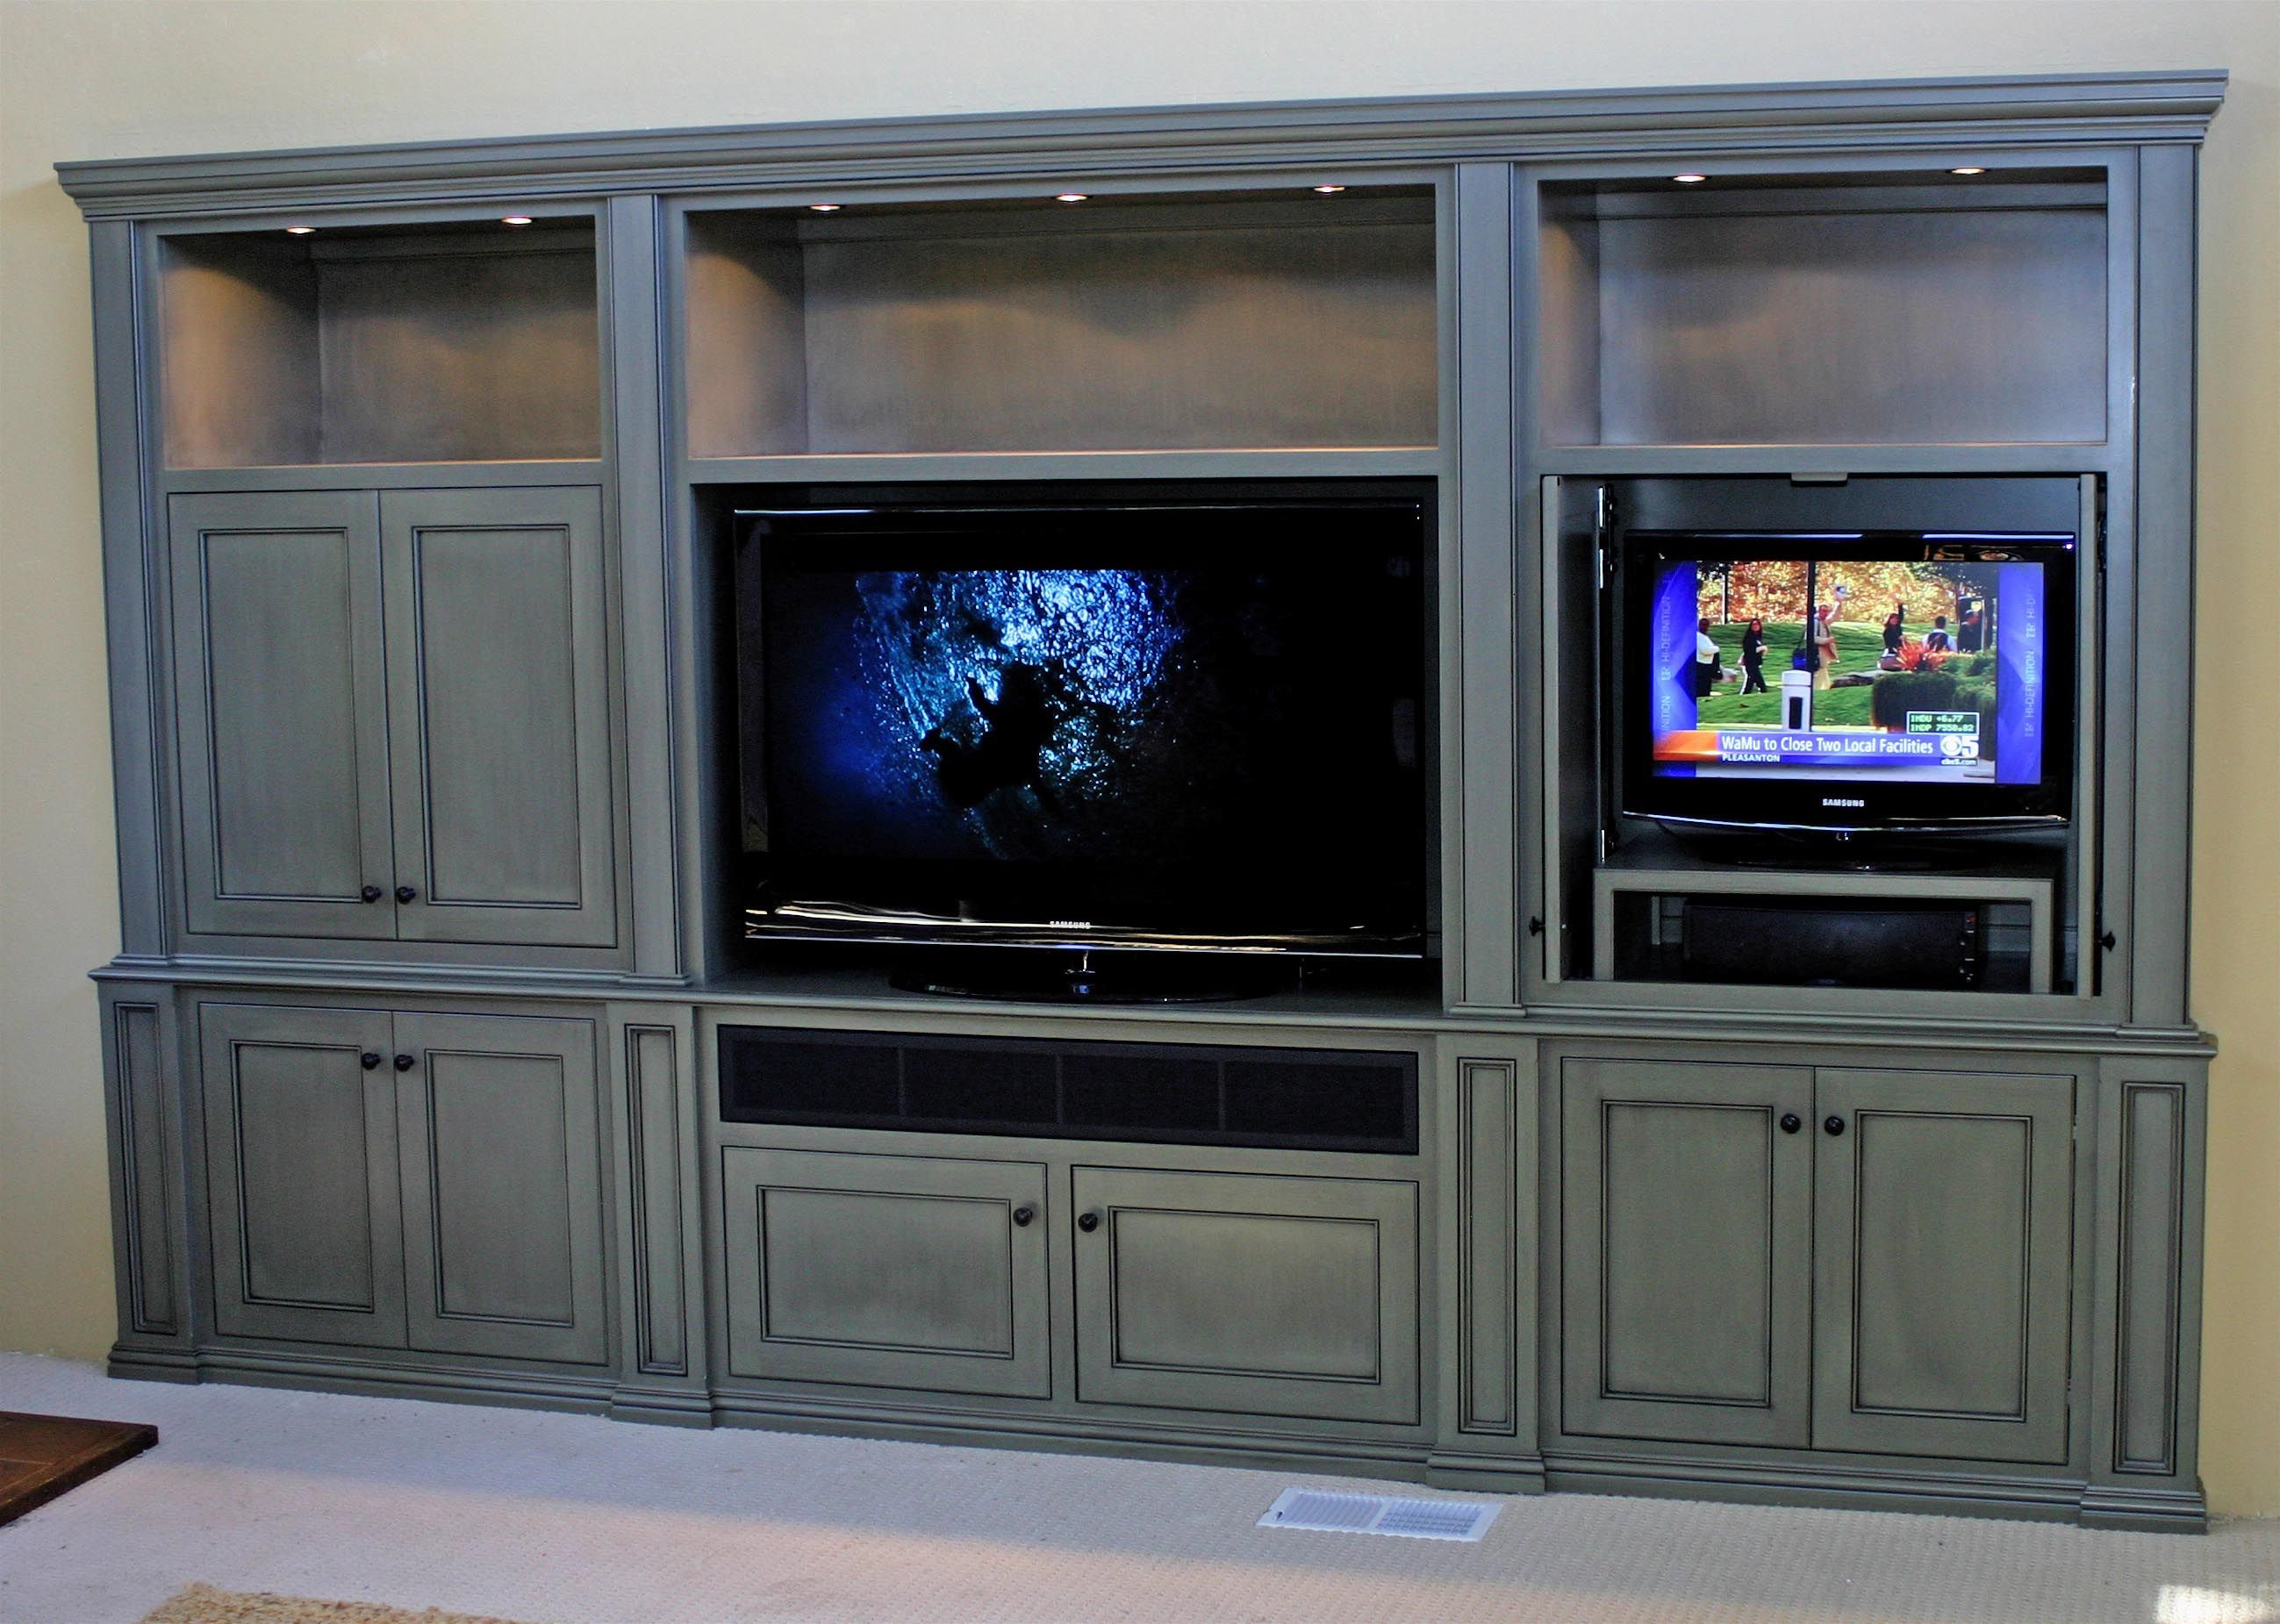 This Is One Of The Integrated Lifestyleu0027s First Collaboration With A  Designer And Custom Cabinet Builder. It Started Out With A Bay Window, Tube  TV, ...